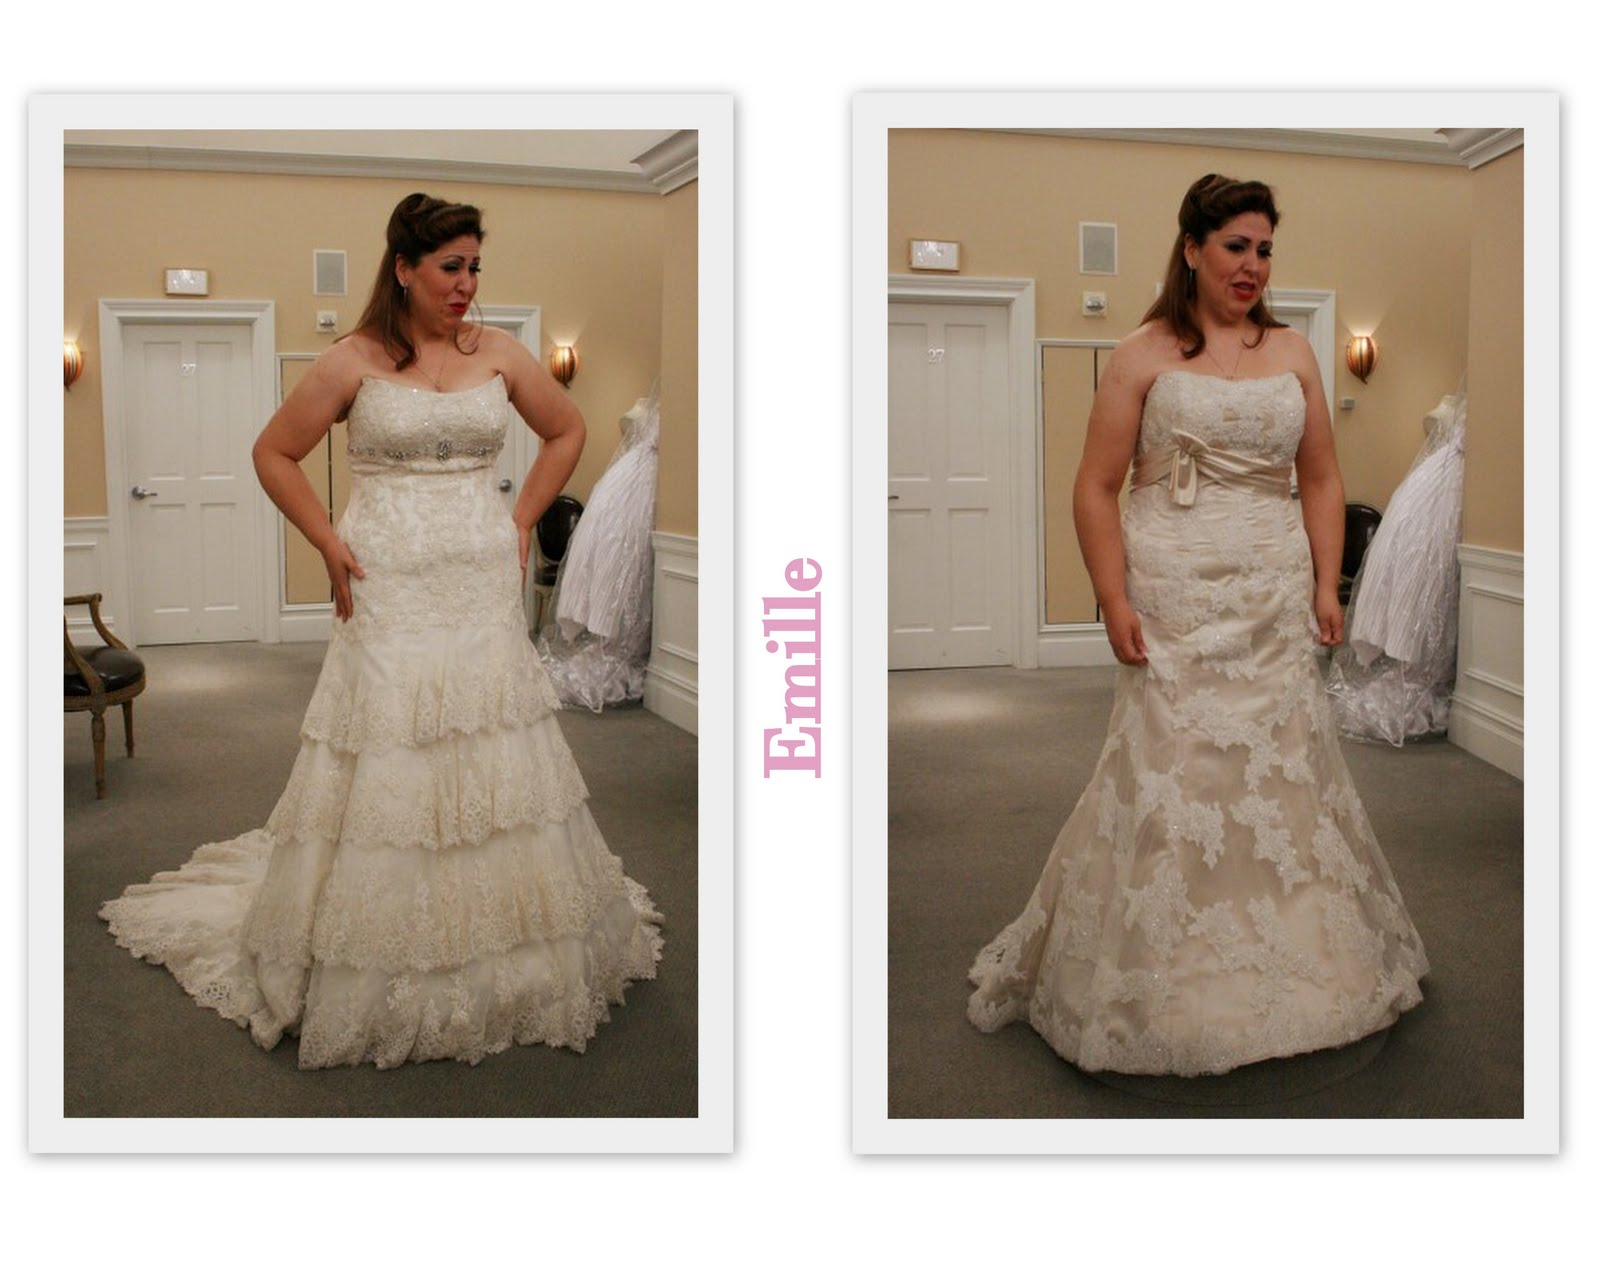 Say Yes To The Dress Big Bliss Bippity Boppity Boo Garnerstyle